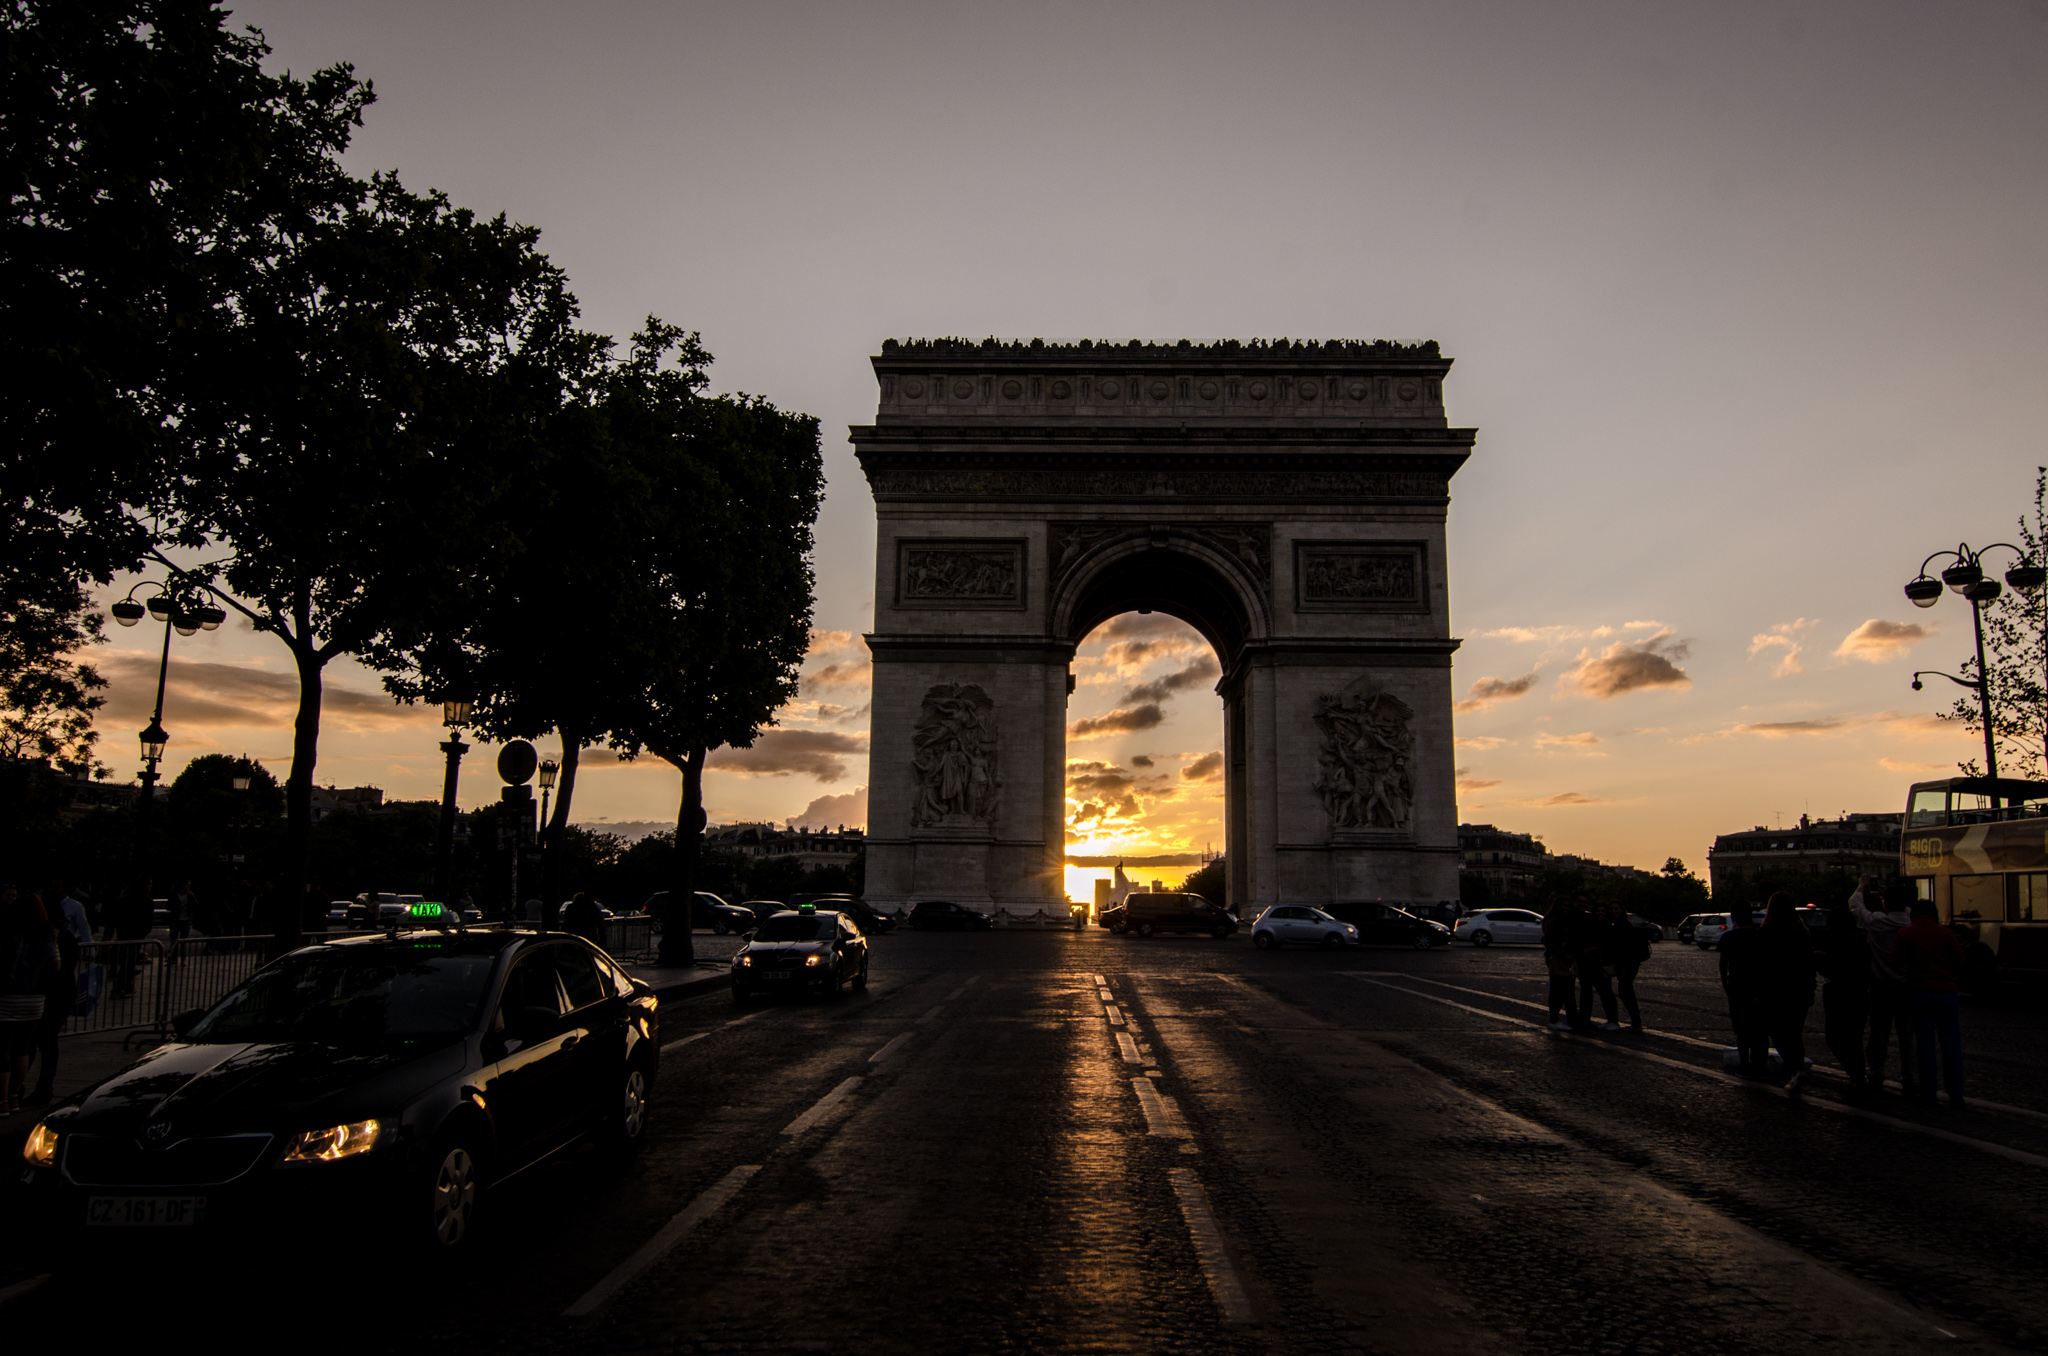 2015-07-29 - Jamritha Honeymoon - 004 - Arc de Triomphe - 002